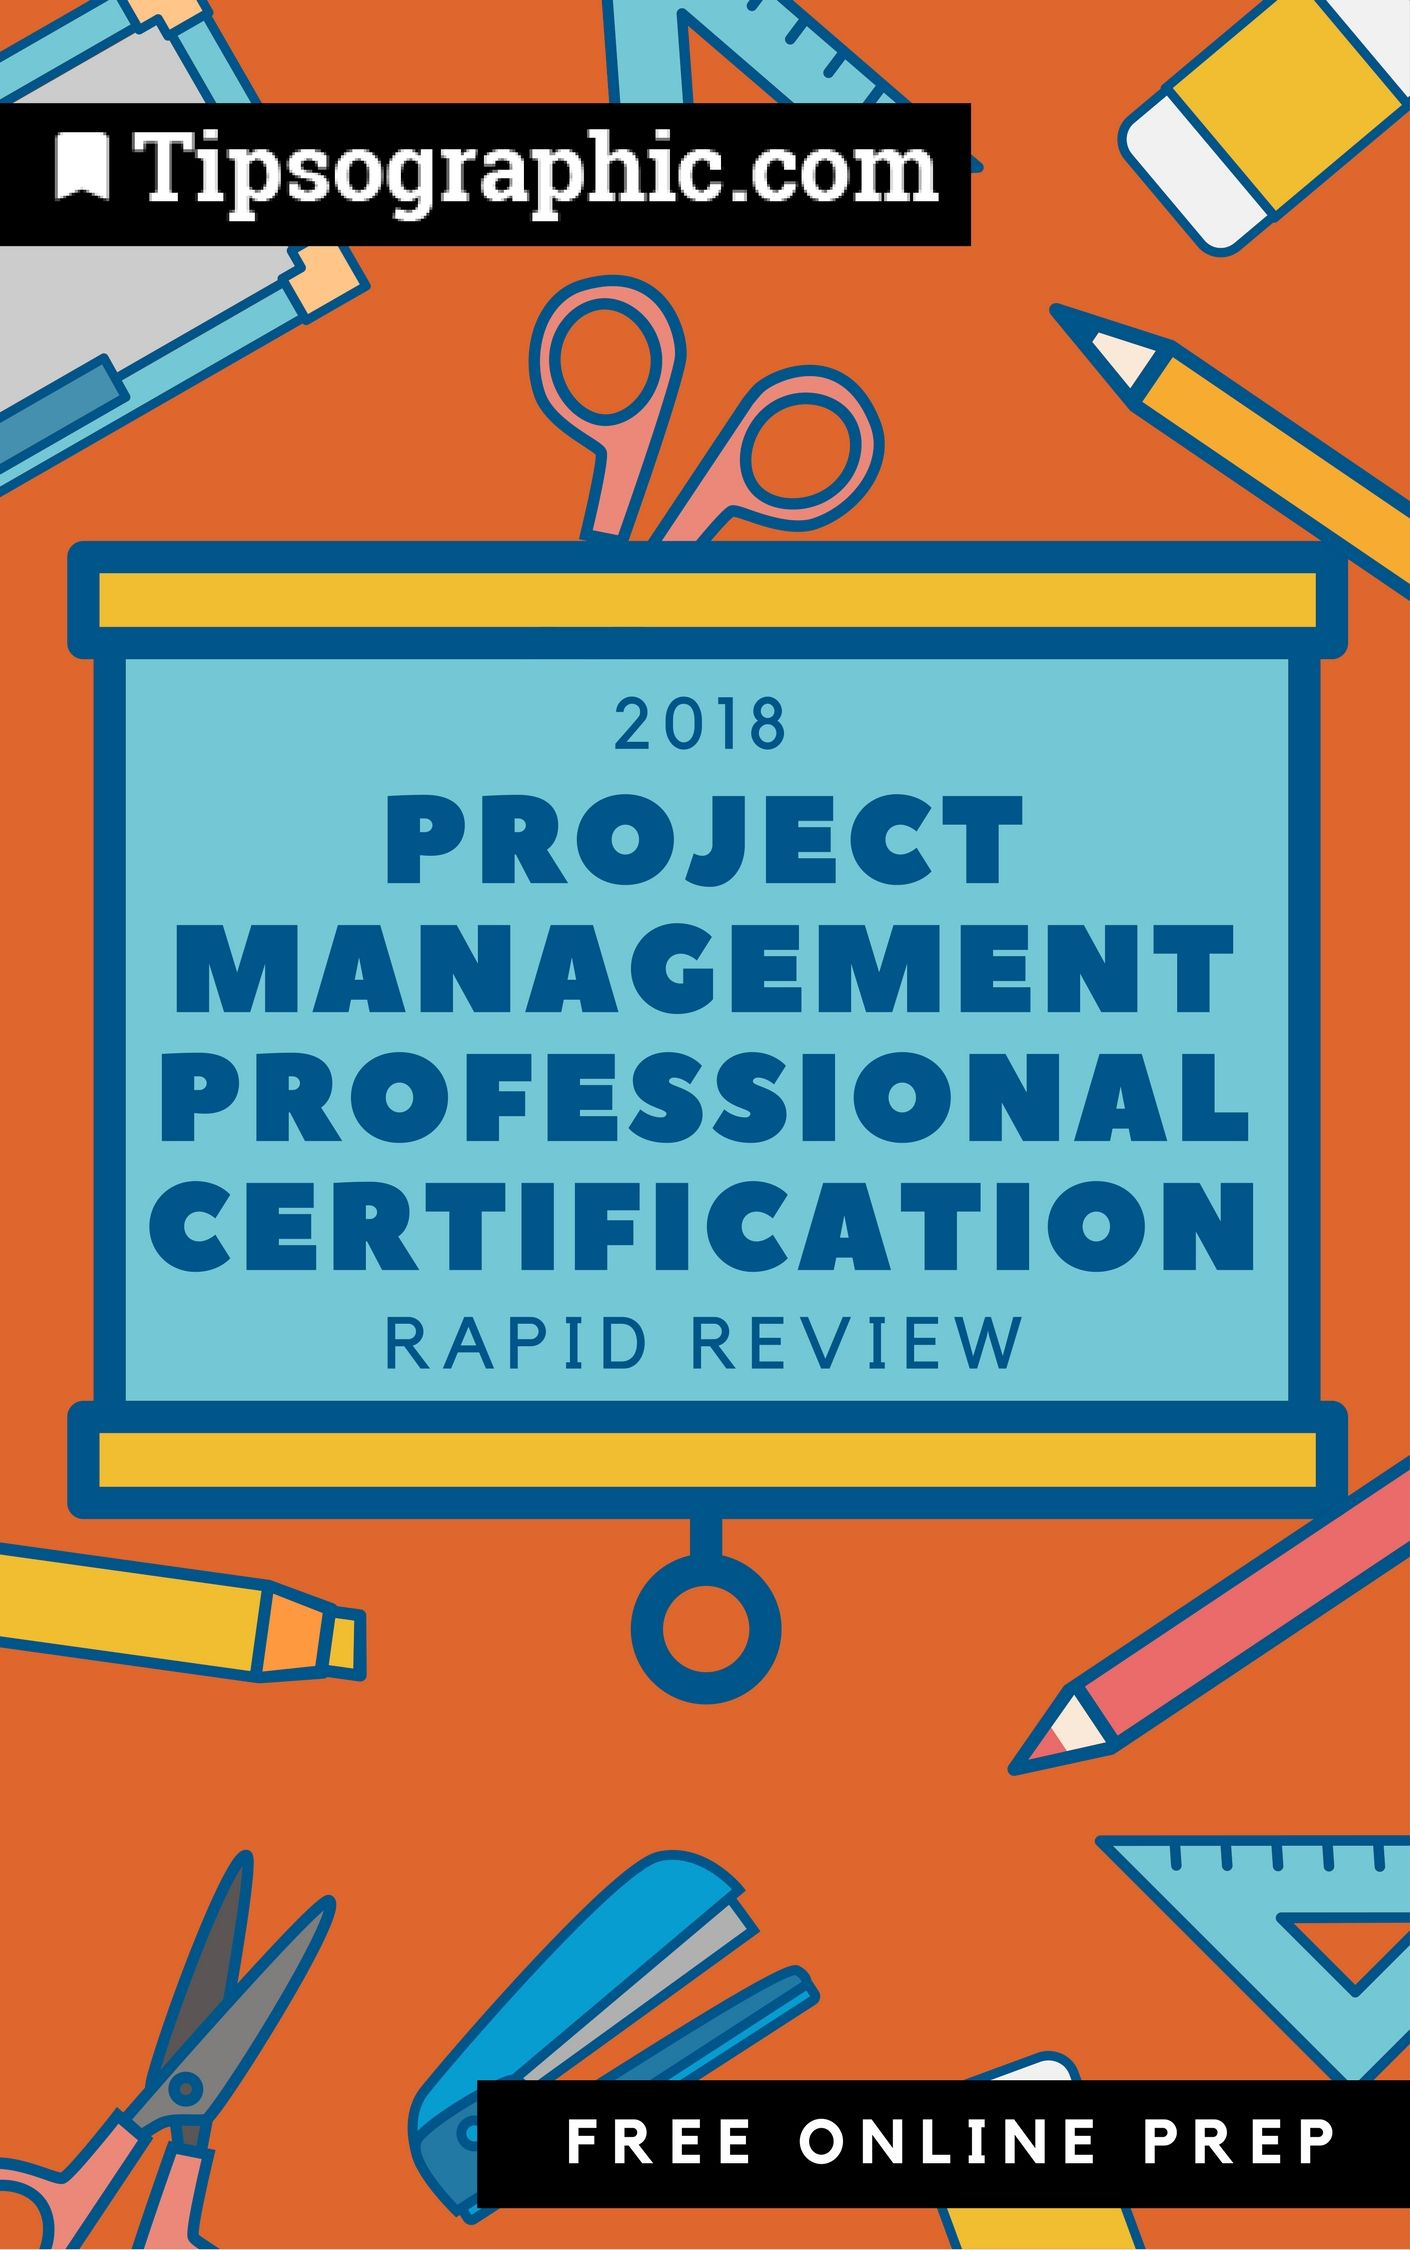 Project Management Professional Certification 2018 Rapid Review